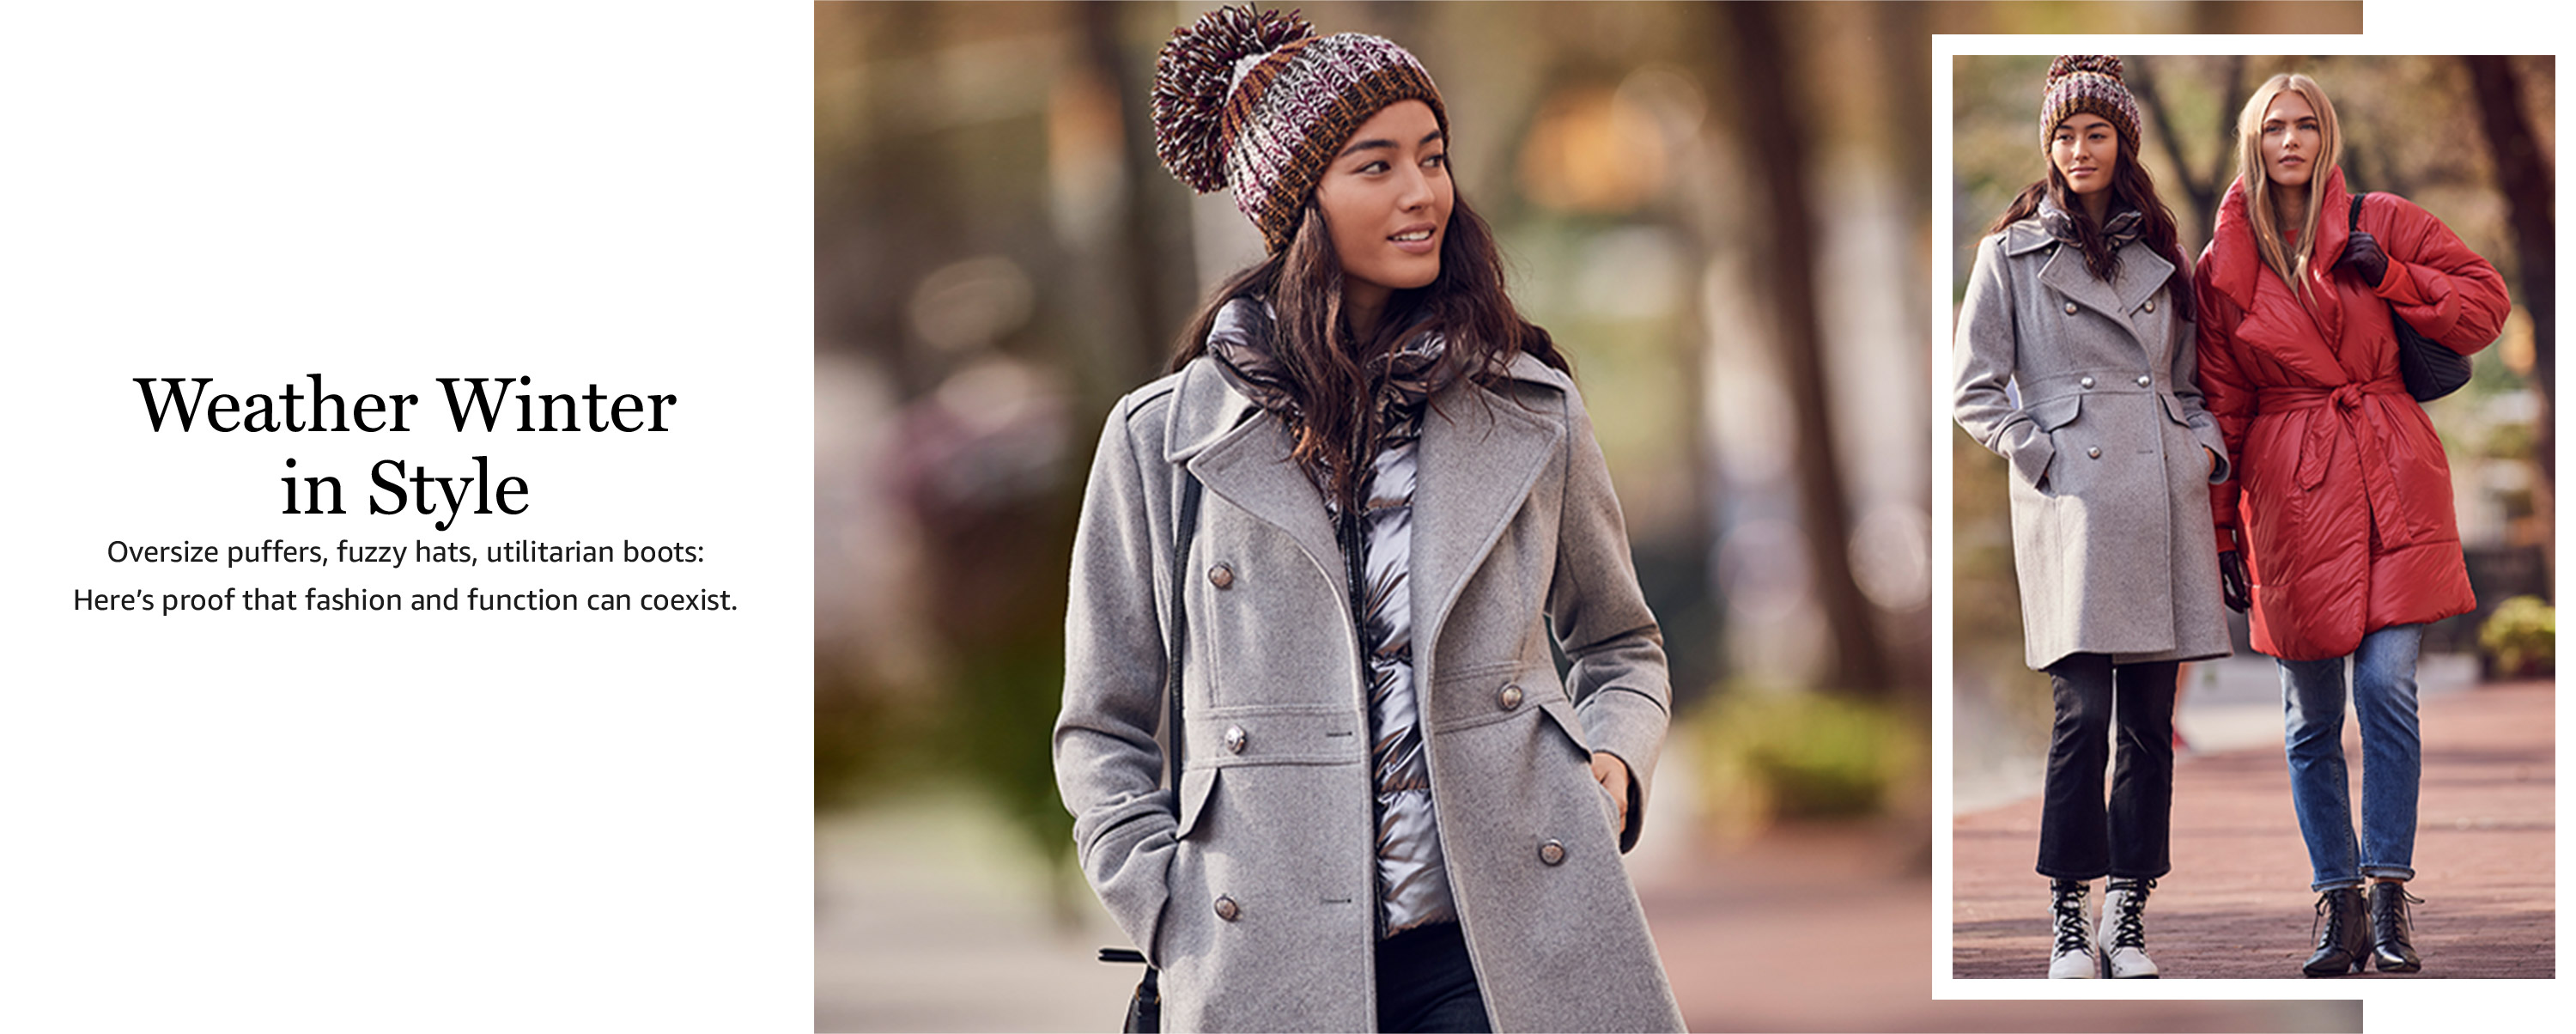 Winter weather in style